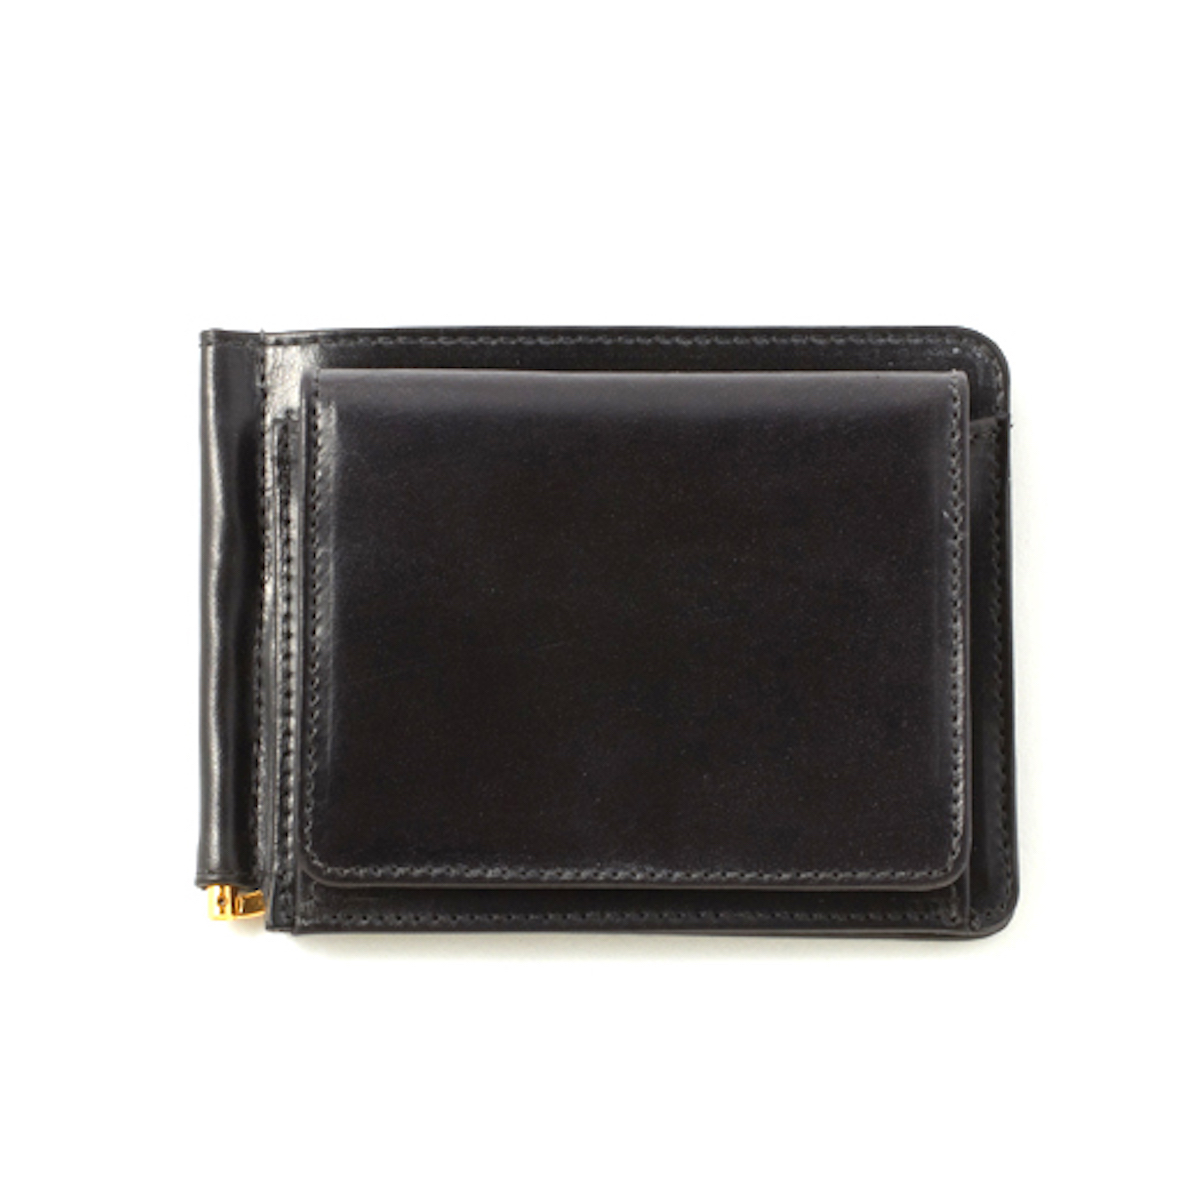 GLEN ROYAL / MONEY CLIP WITH COIN POCKET -NEW BLACK